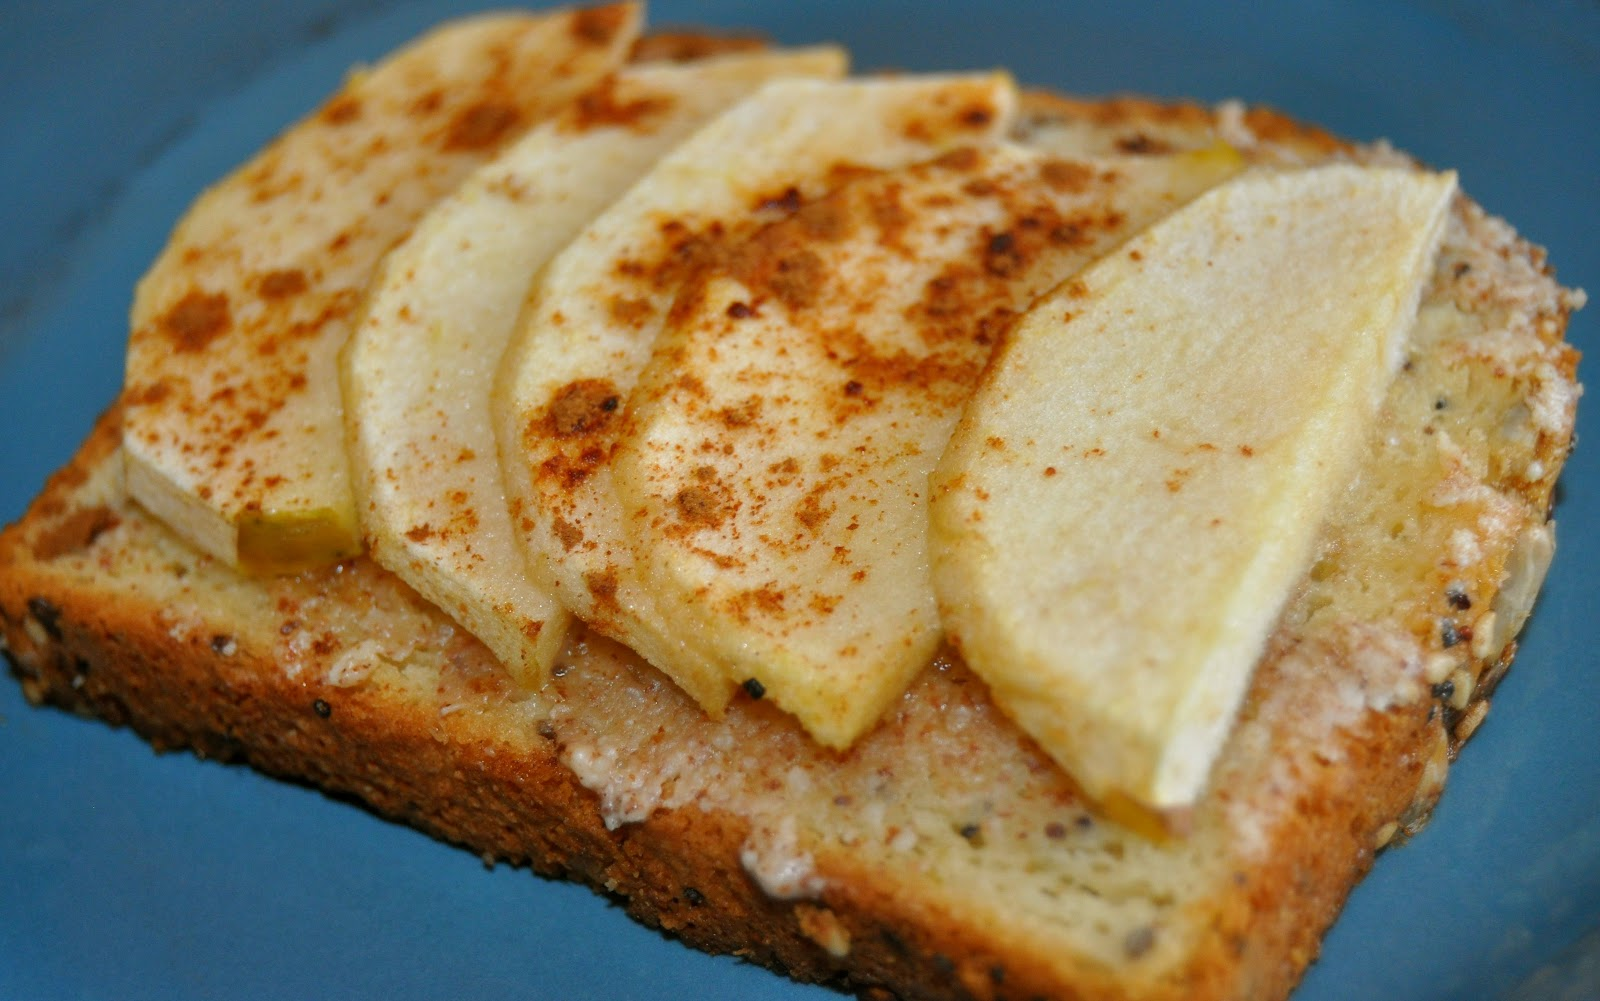 baked apple slices recipe yummly don t mom s baked apple slices baked ...